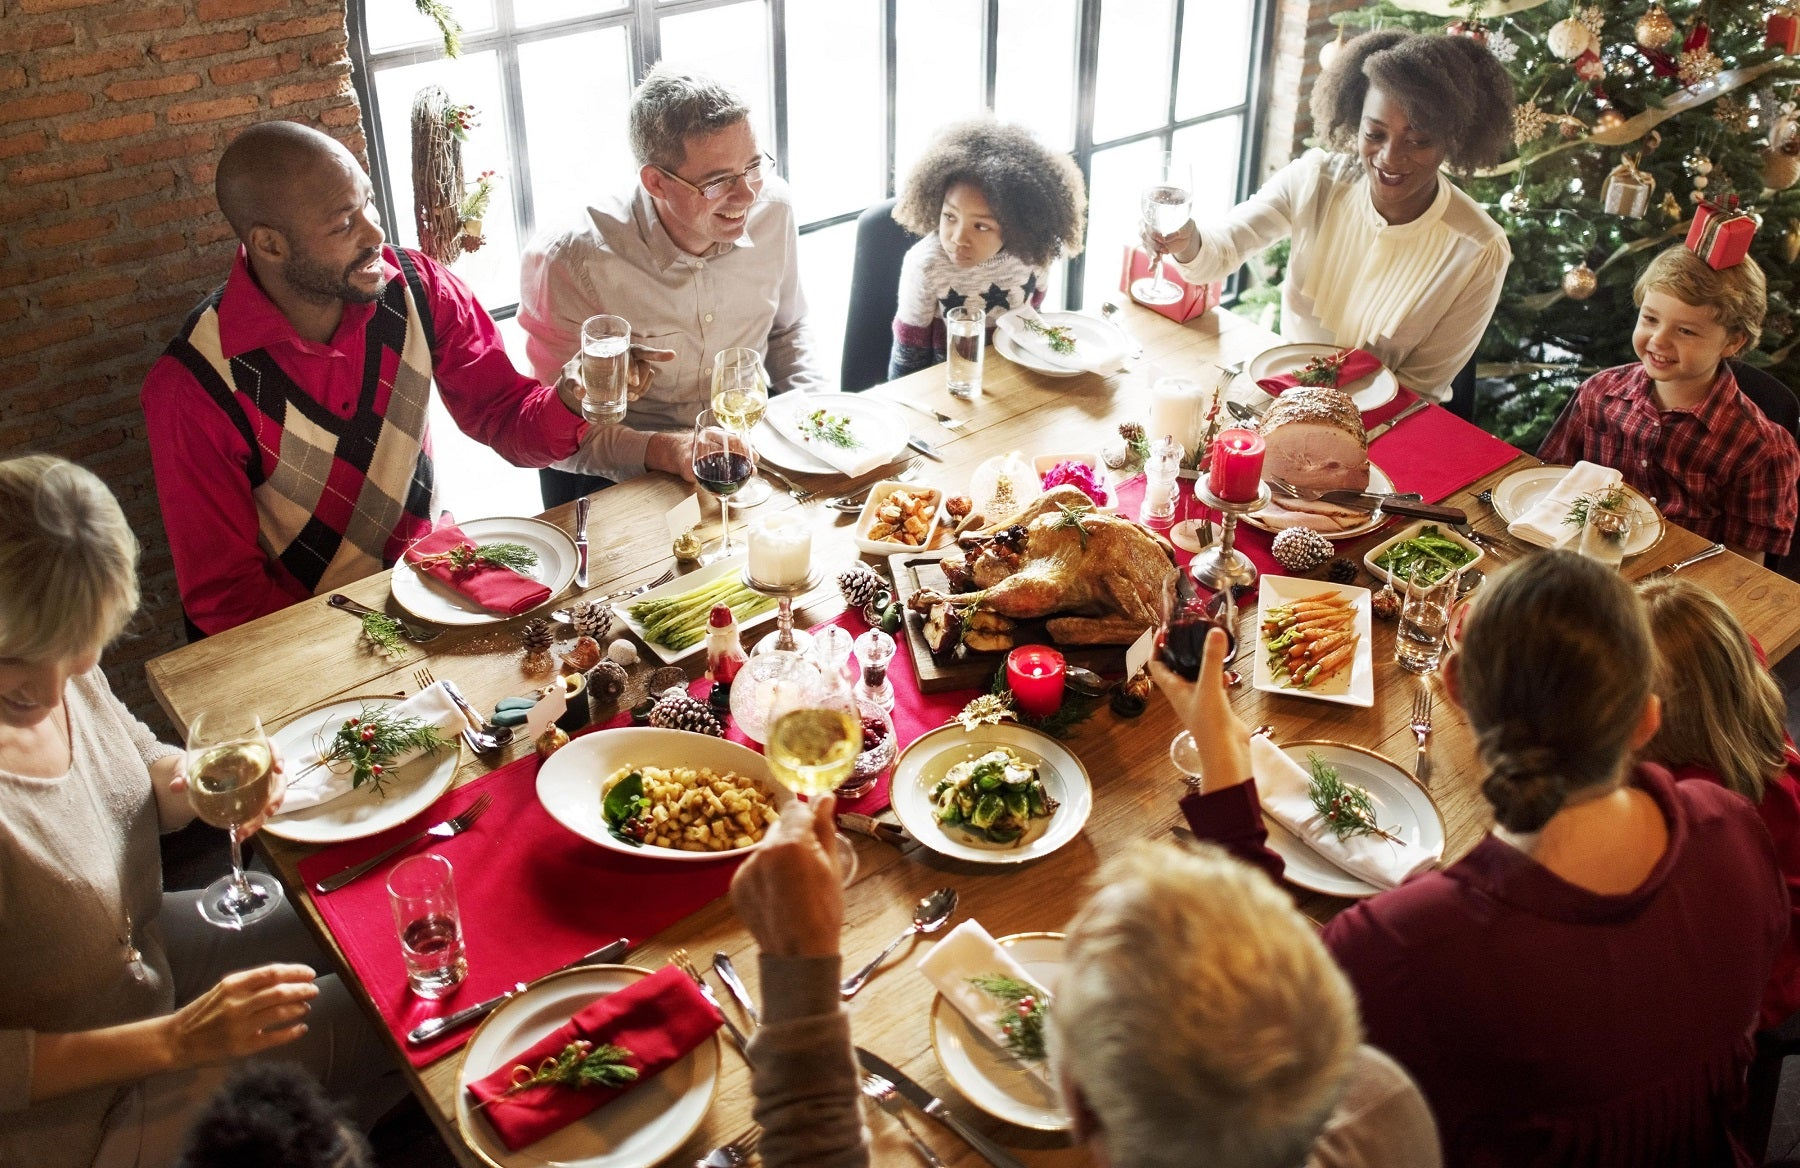 A family sitting around a table full of food during a Christmas dinner